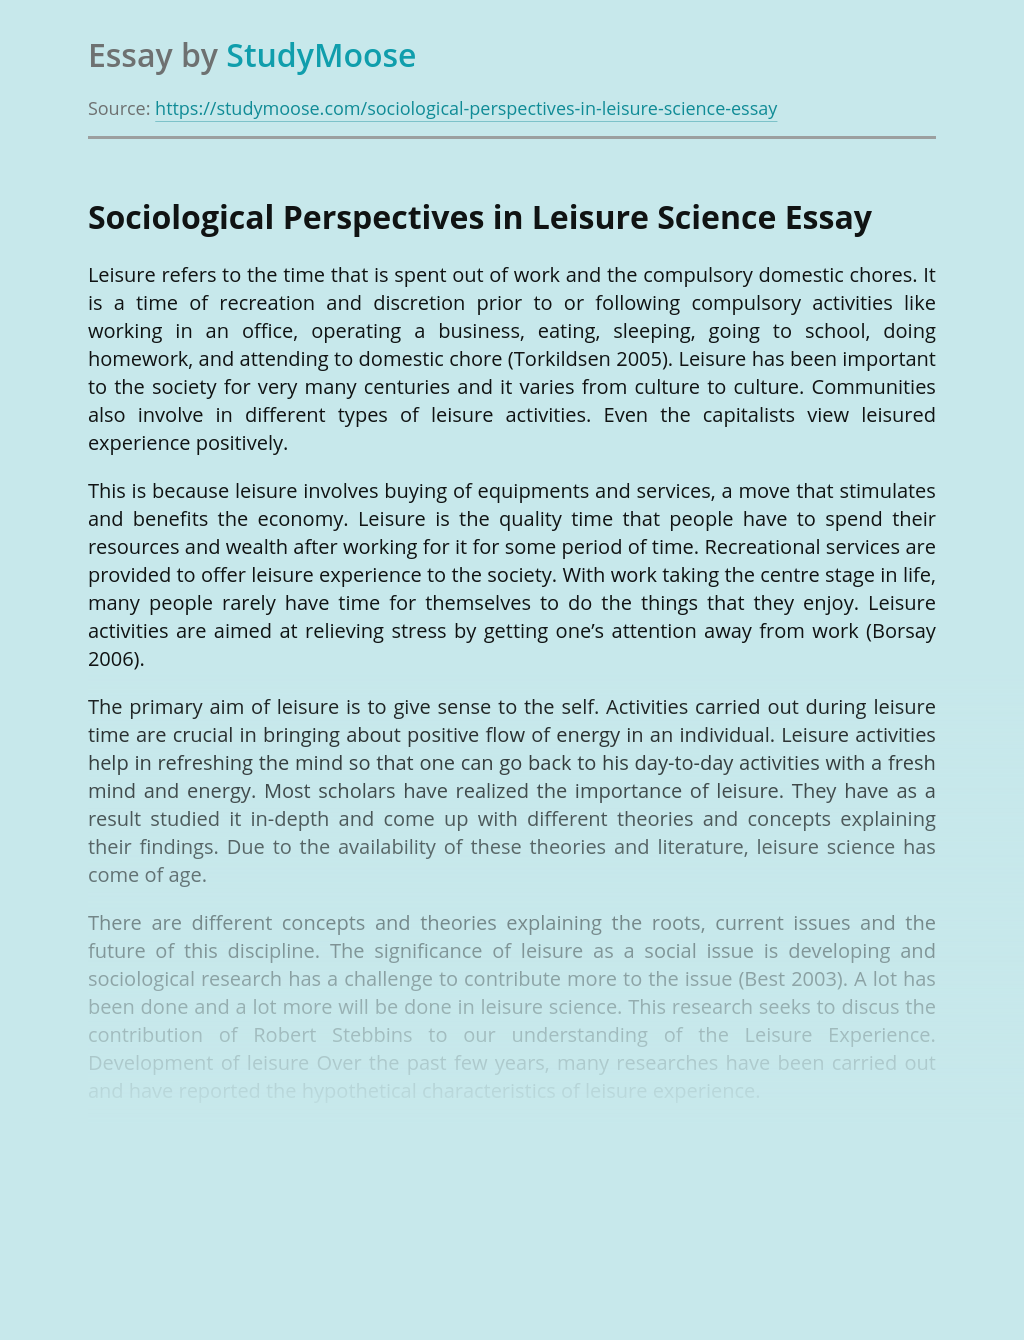 Sociological Perspectives in Leisure Science